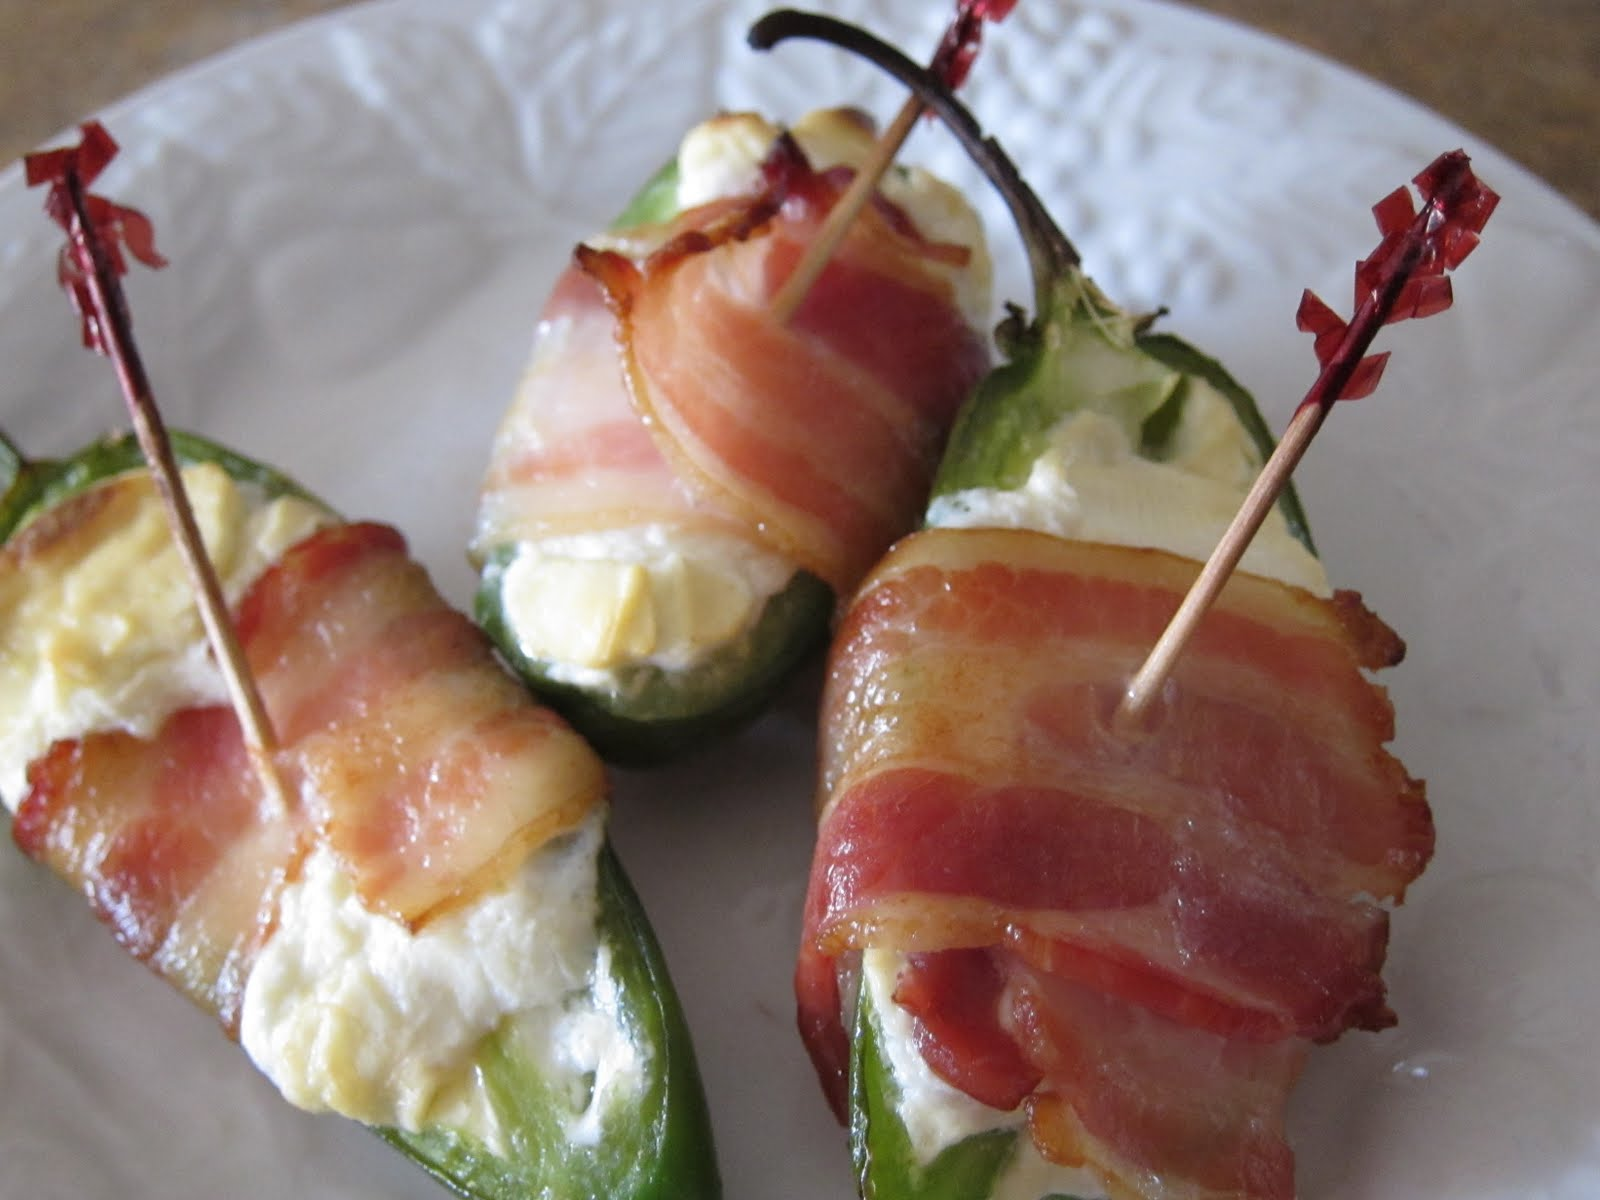 Comfy In The Kitchen: Stuffed Jalapeno Appetizers - 3 Ingredients ...